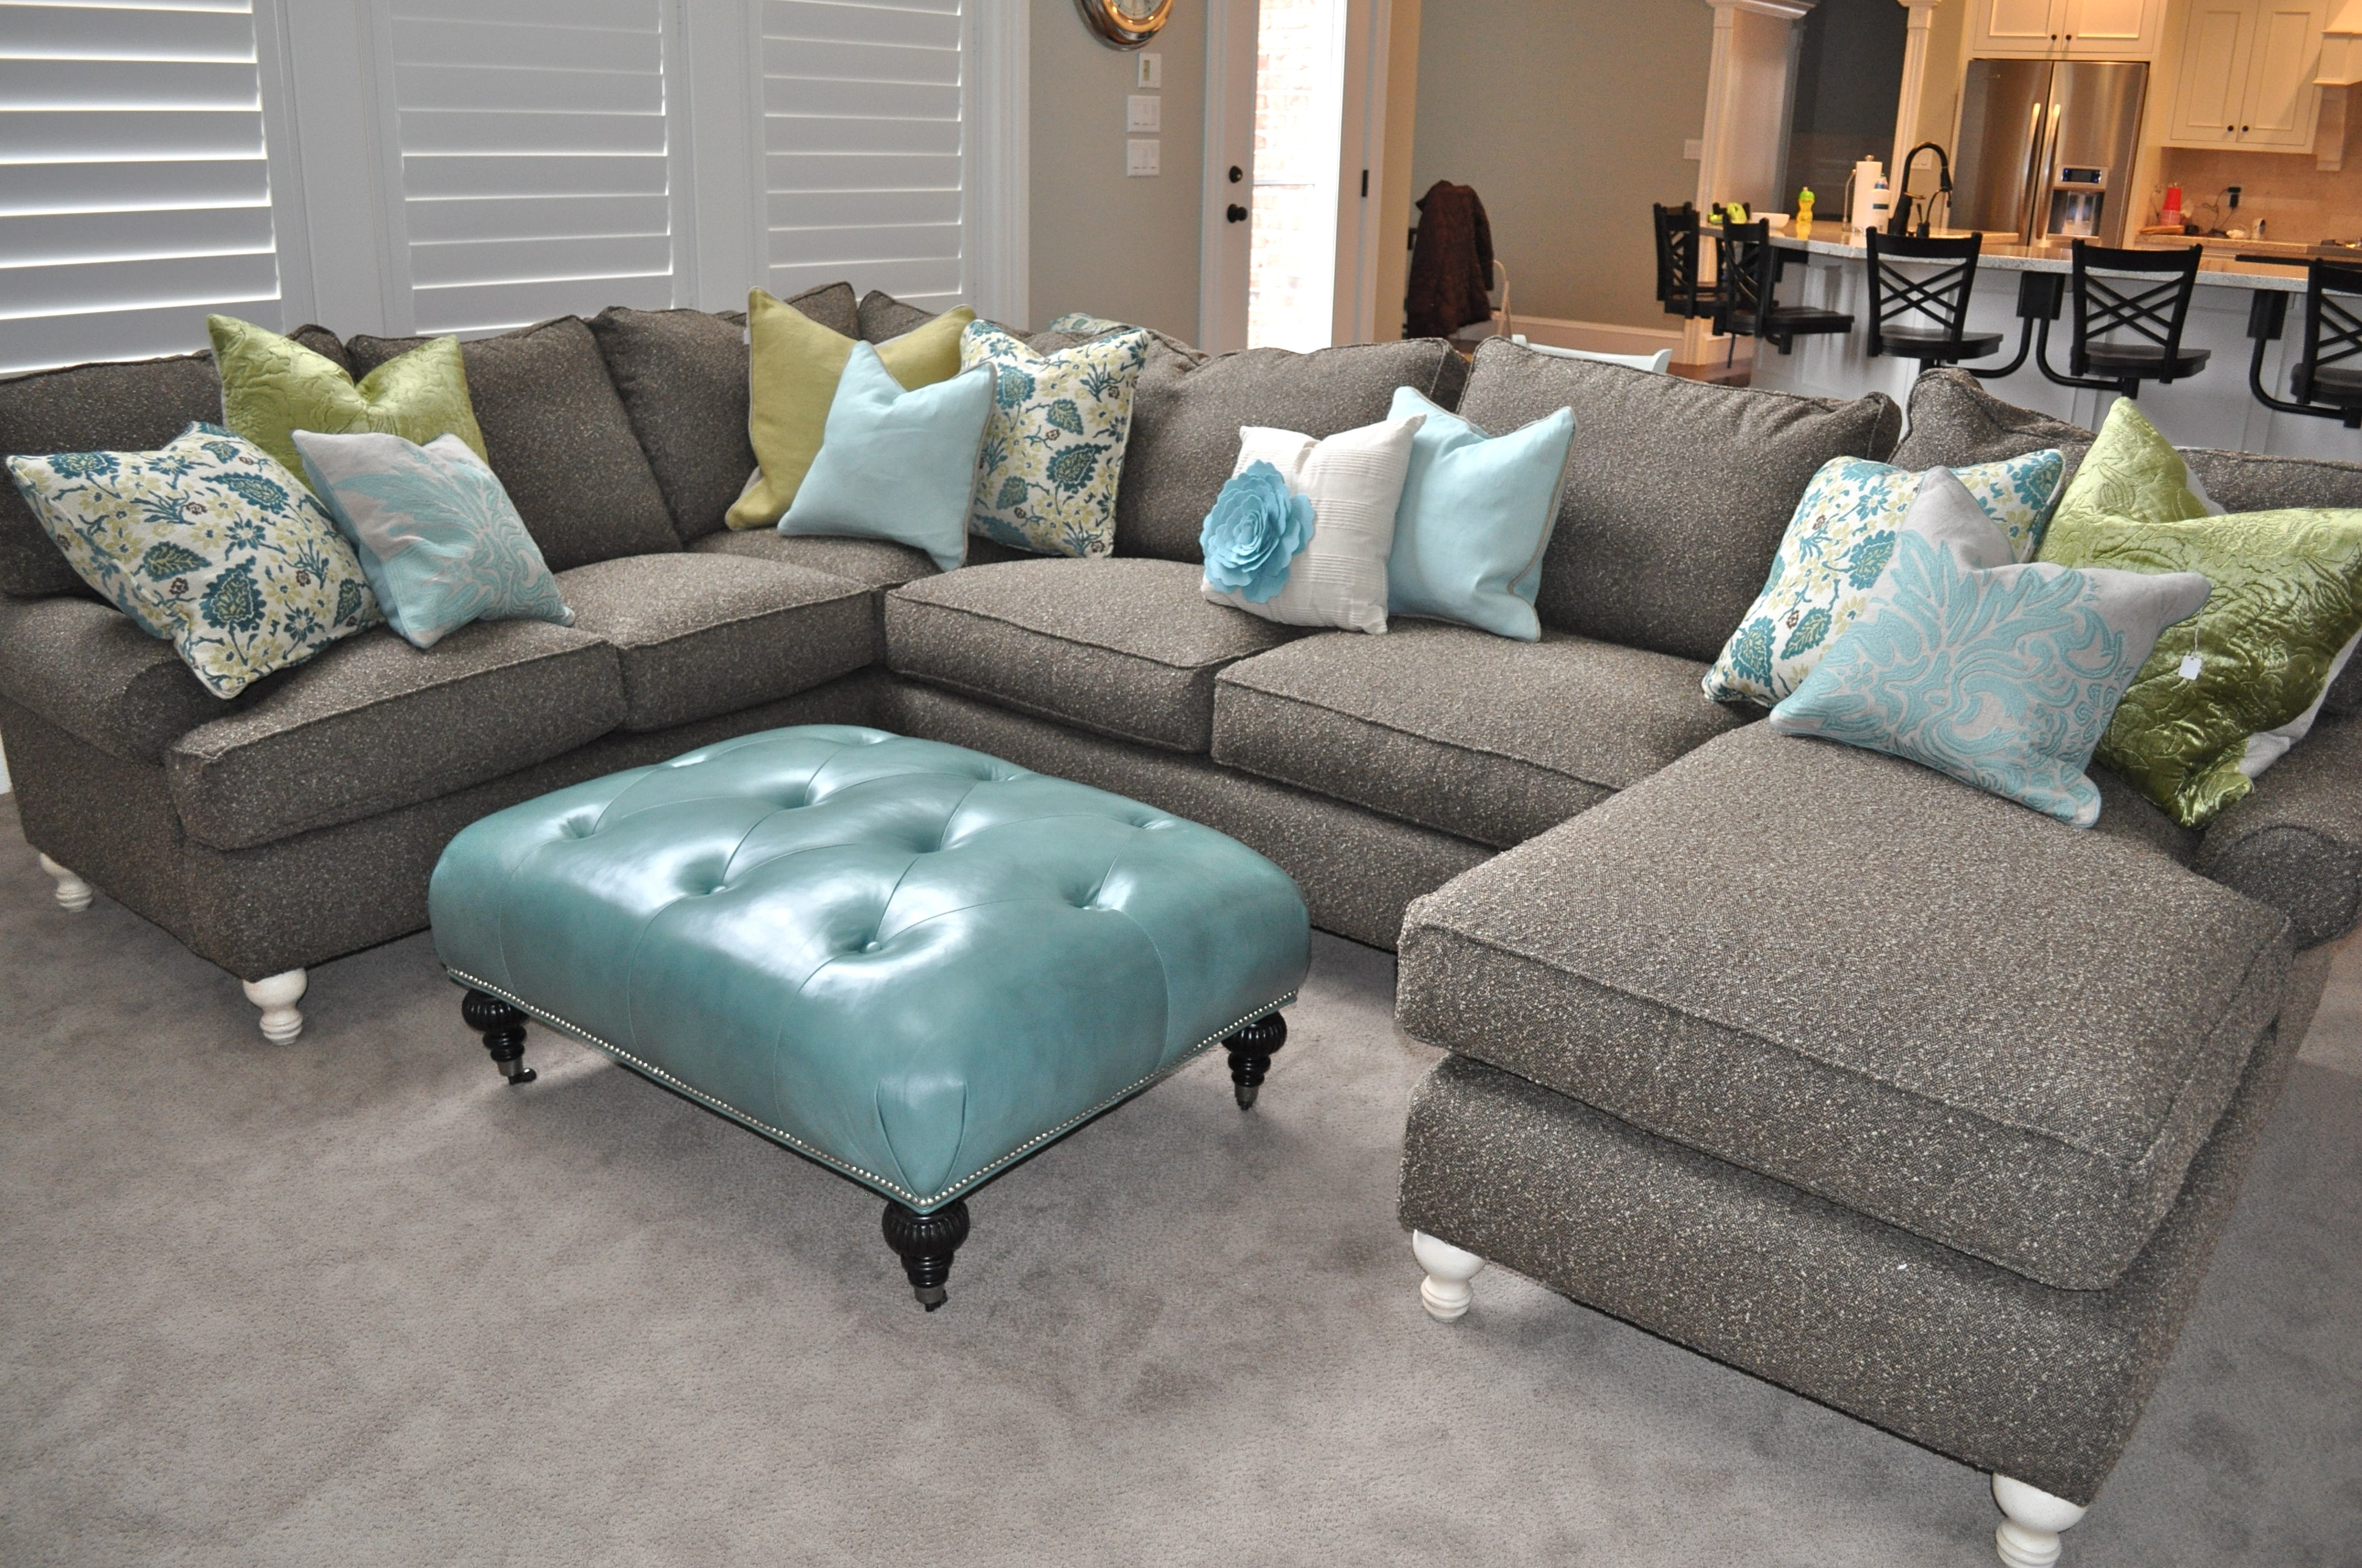 Amusing Sectional Sofa With Chaise And Ottoman 81 On Charcoal Gray Pertaining To Most Popular Grey Sectional Sofas With Chaise (View 4 of 15)